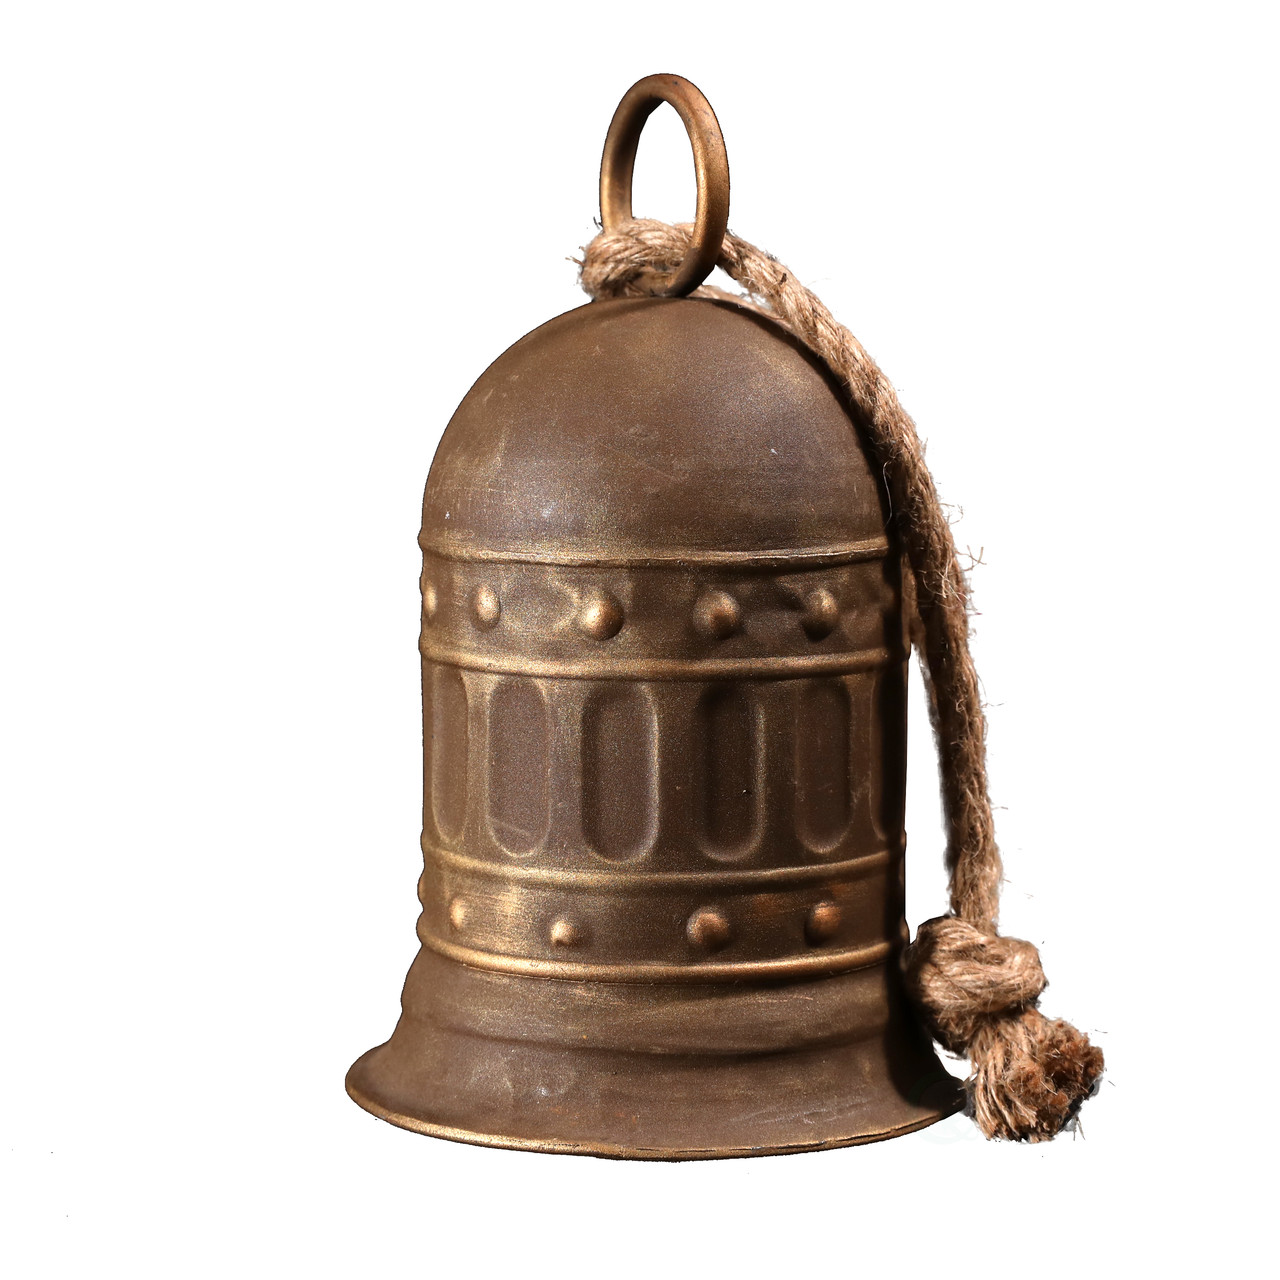 7 In Antique Style Large Decorative Metal Bell For Garden And Home Decor Vintiquewise